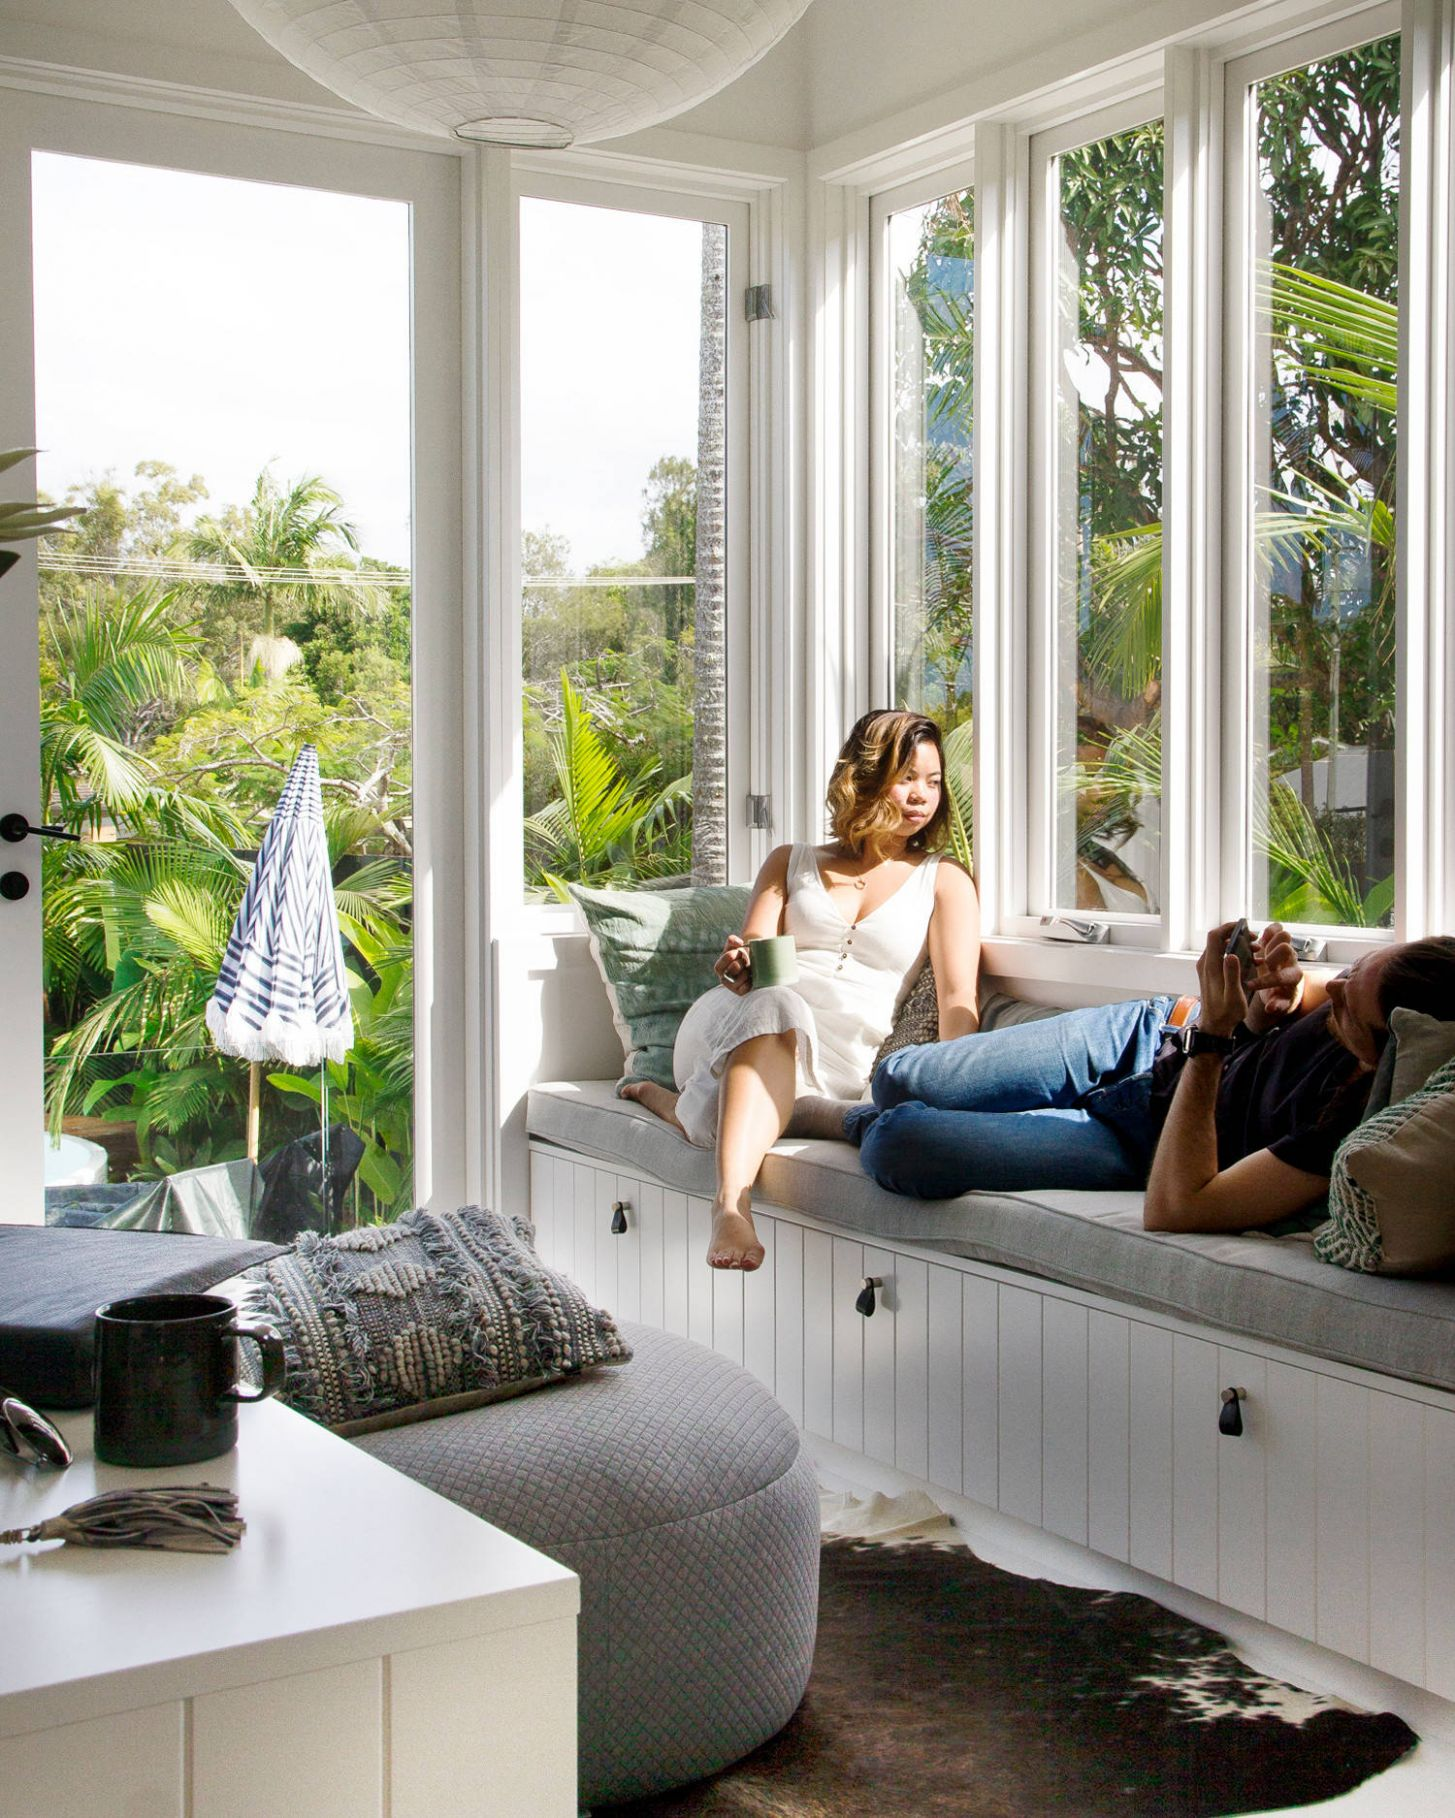 8 Beautiful Tropical Sunroom Pictures & Ideas | Houzz - small sunroom renovation